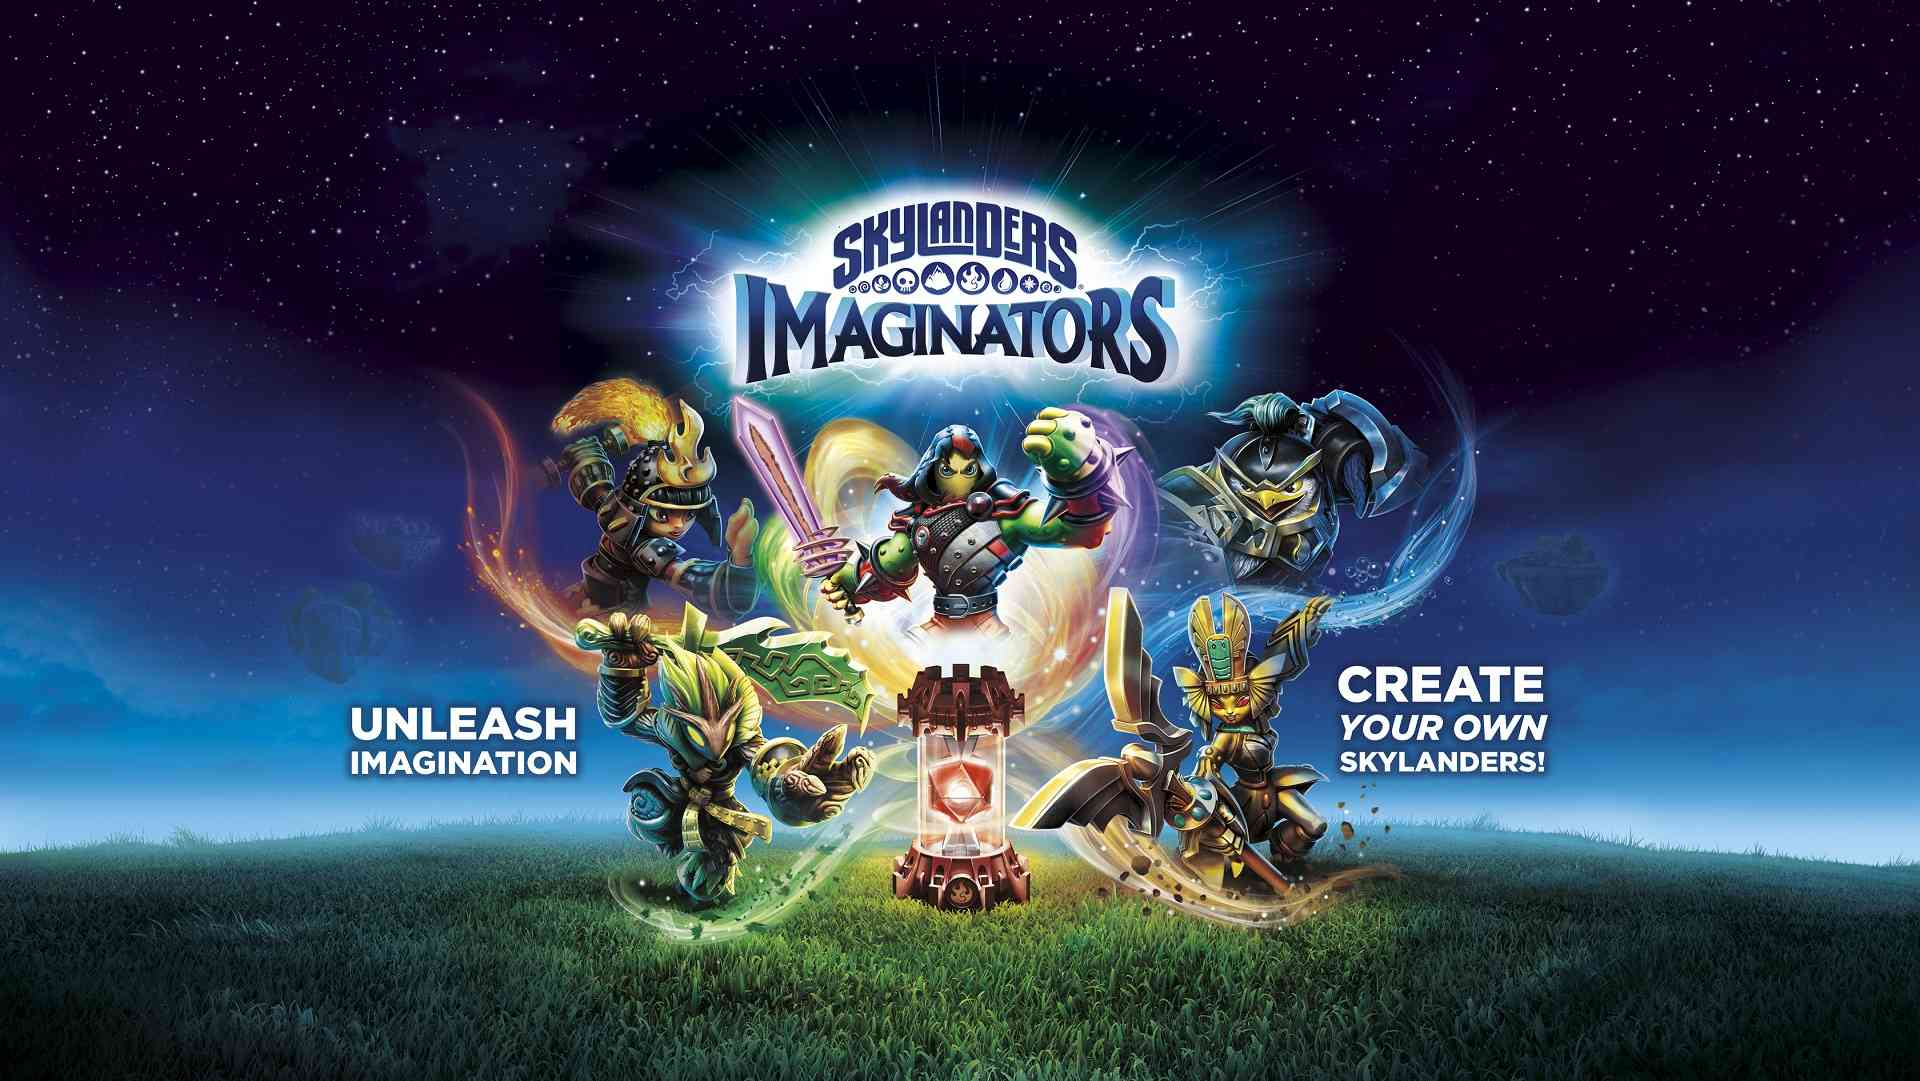 Ranking The Top 5 Customization Features in Skylanders Imaginators